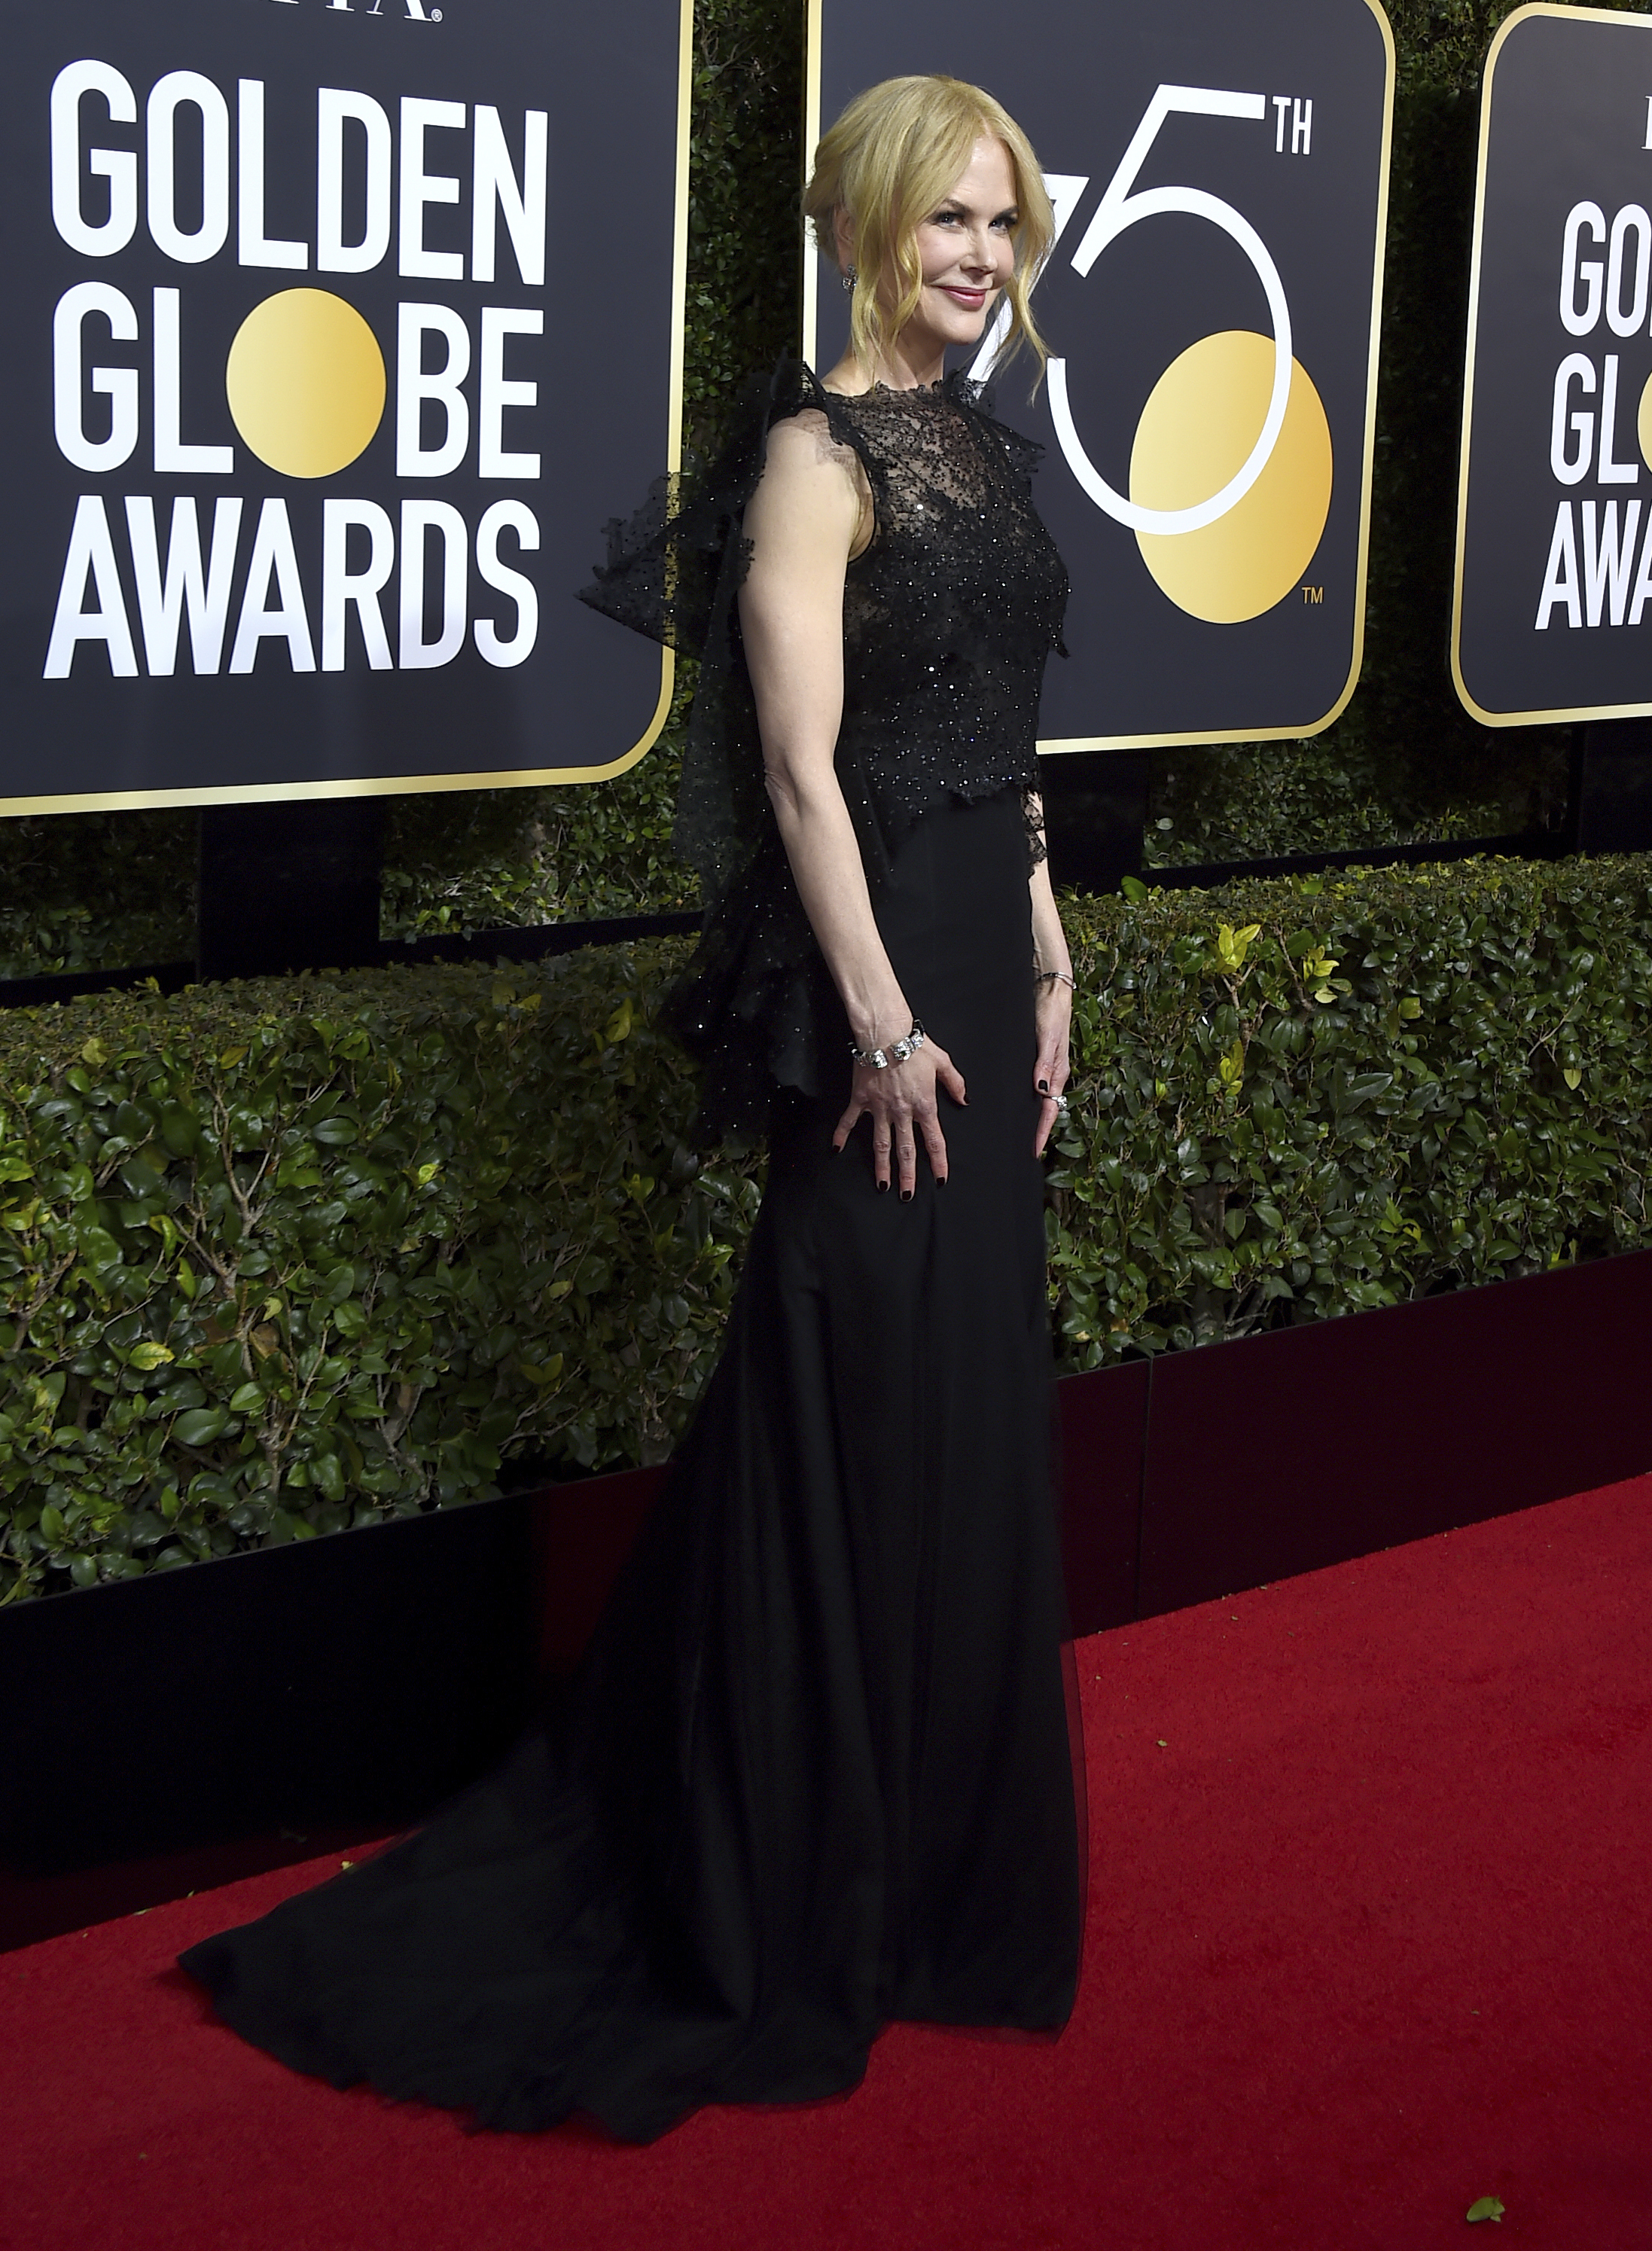 <div class='meta'><div class='origin-logo' data-origin='AP'></div><span class='caption-text' data-credit='Jordan Strauss/Invision/AP'>Nicole Kidman arrives at the 75th annual Golden Globe Awards at the Beverly Hilton Hotel on Sunday, Jan. 7, 2018, in Beverly Hills, Calif.</span></div>